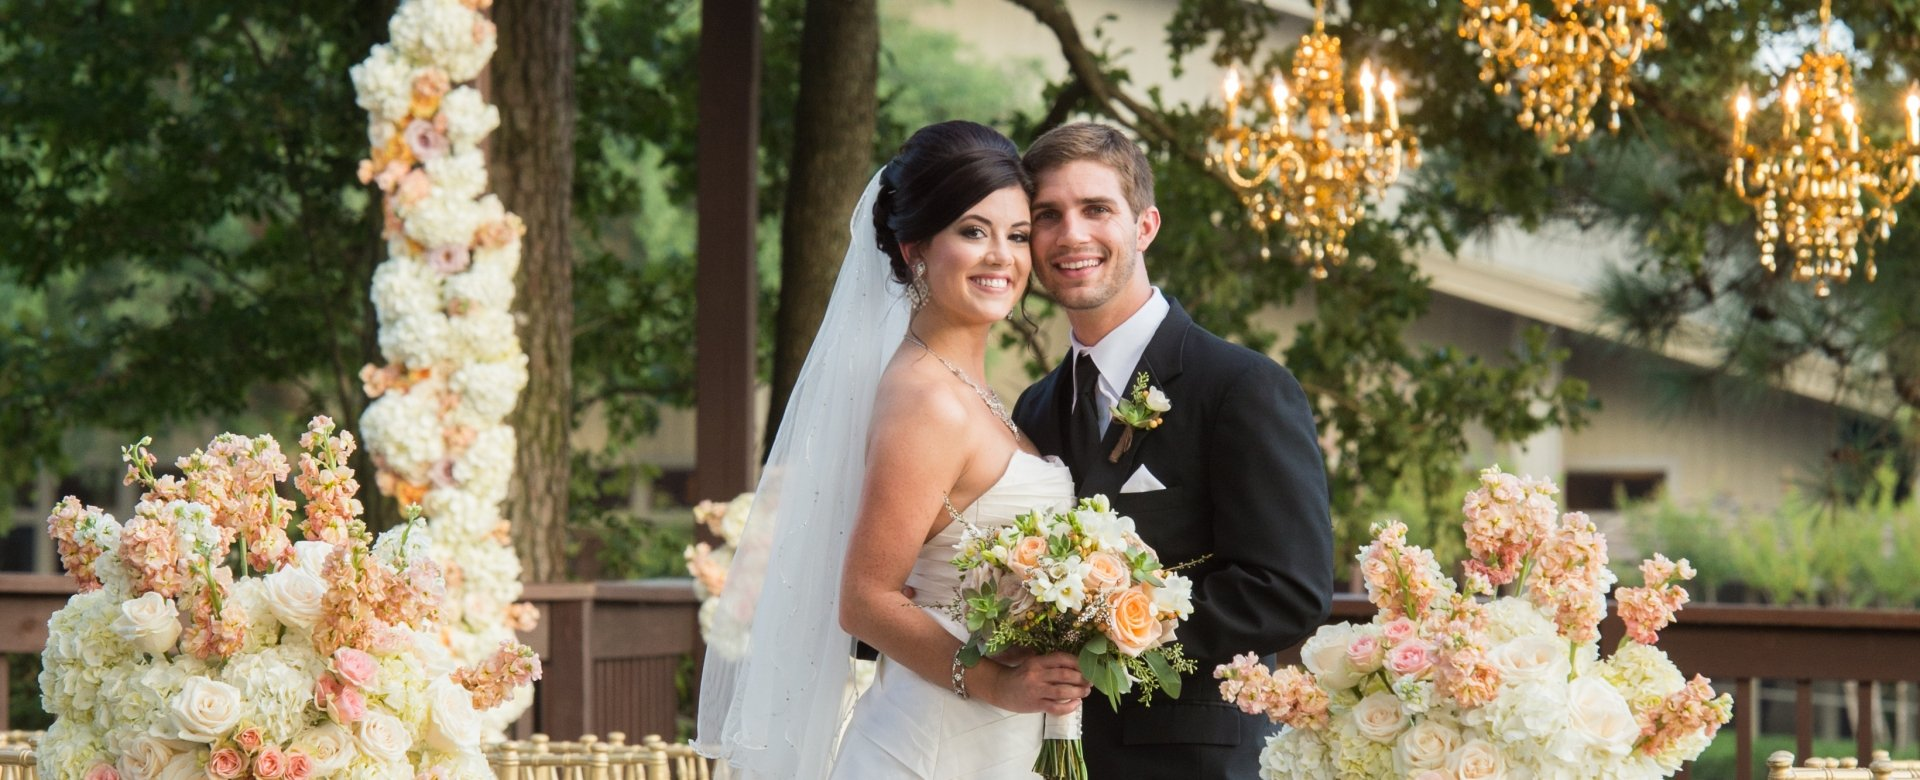 A groom and bride smile while standing under a decorated pavilion.